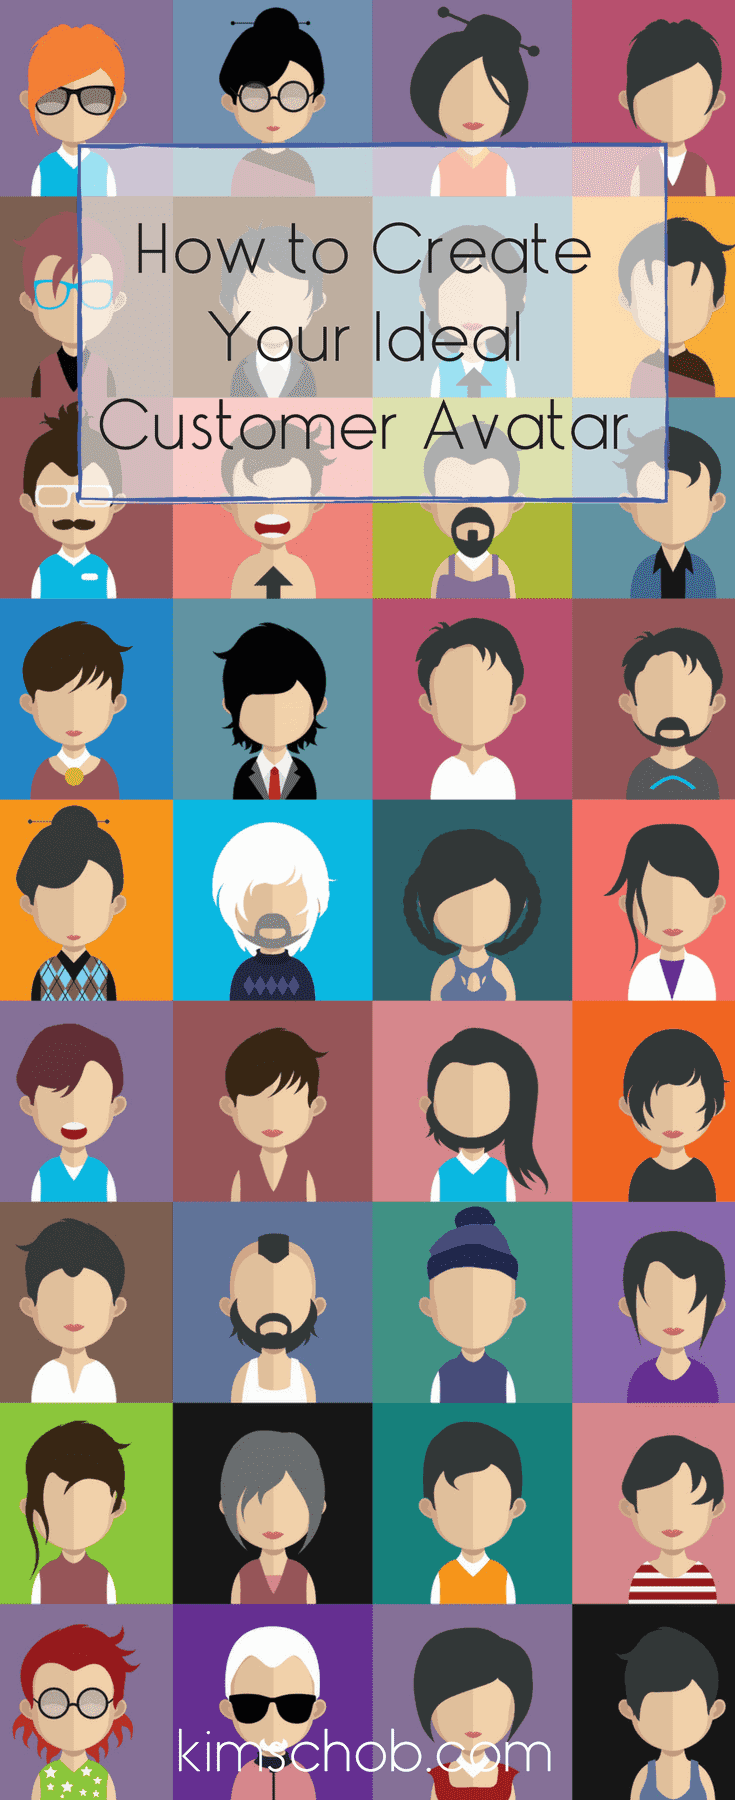 How to Create Your Ideal Customer Avatar | FREE Checklist | It is easier than you might think | kimschob.com | #customeravatar #idealcustomer #createcustomeravatar